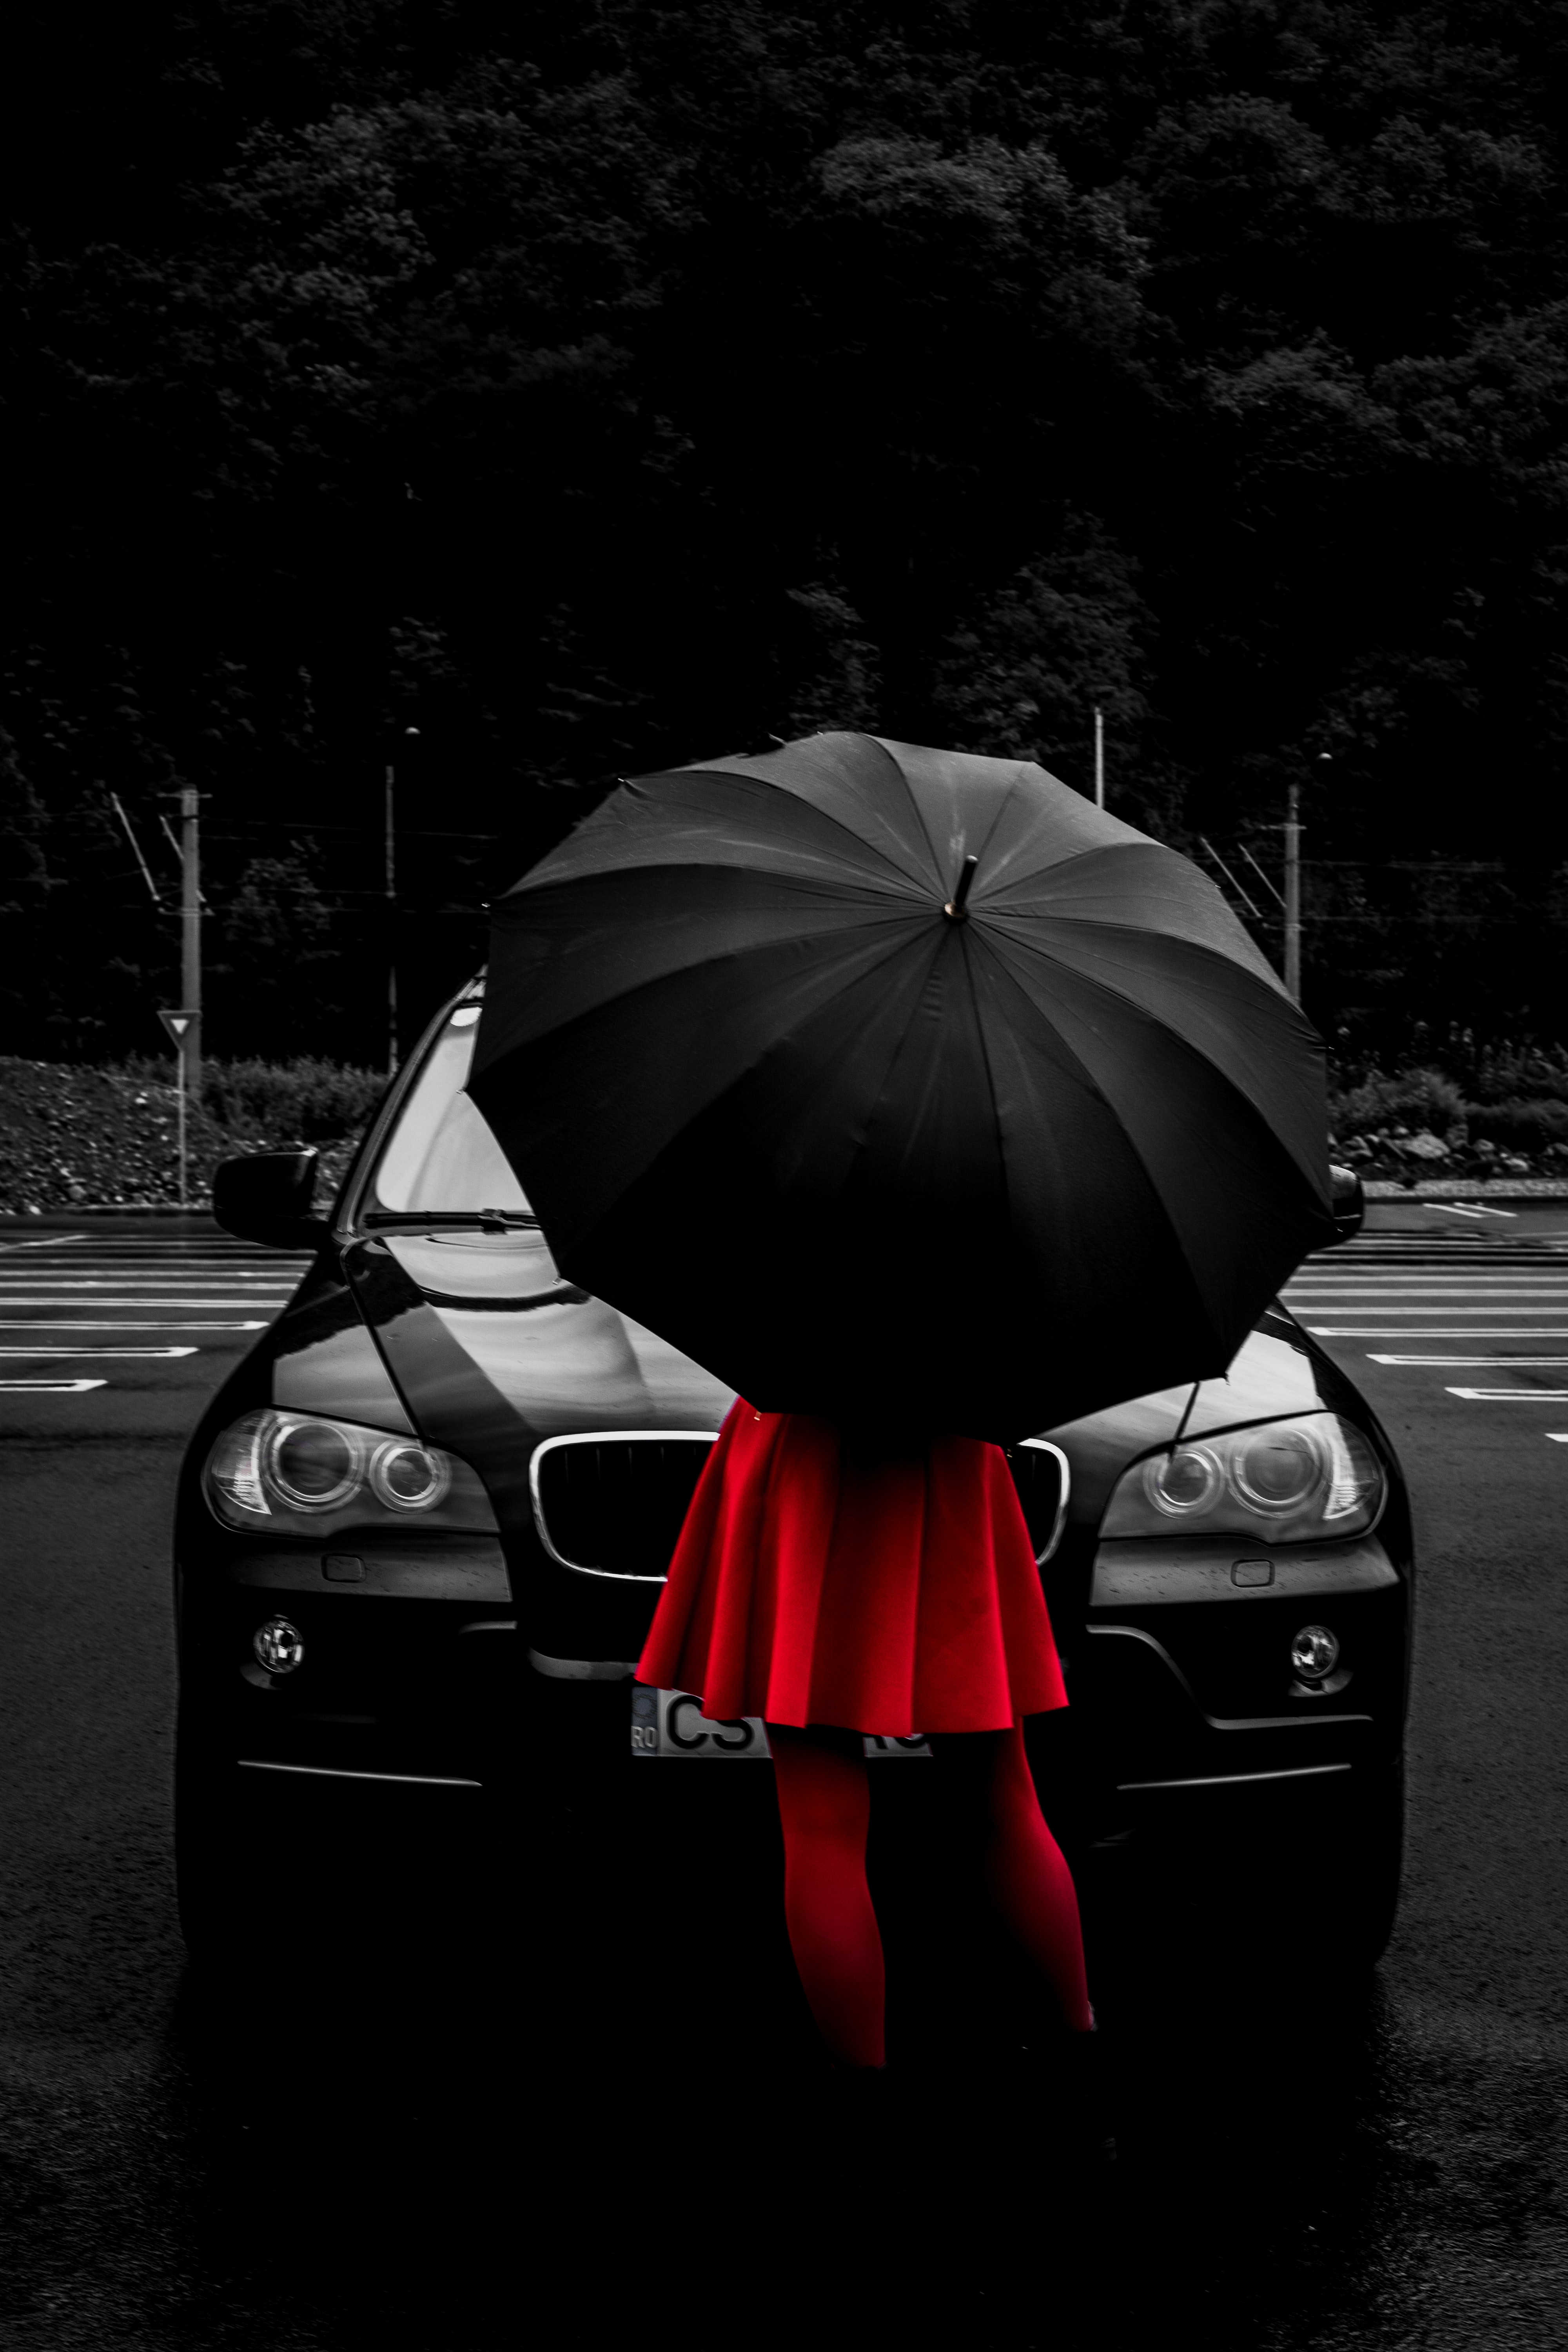 woman wearing red flare dress under black umbrella while standing in front of vehicle